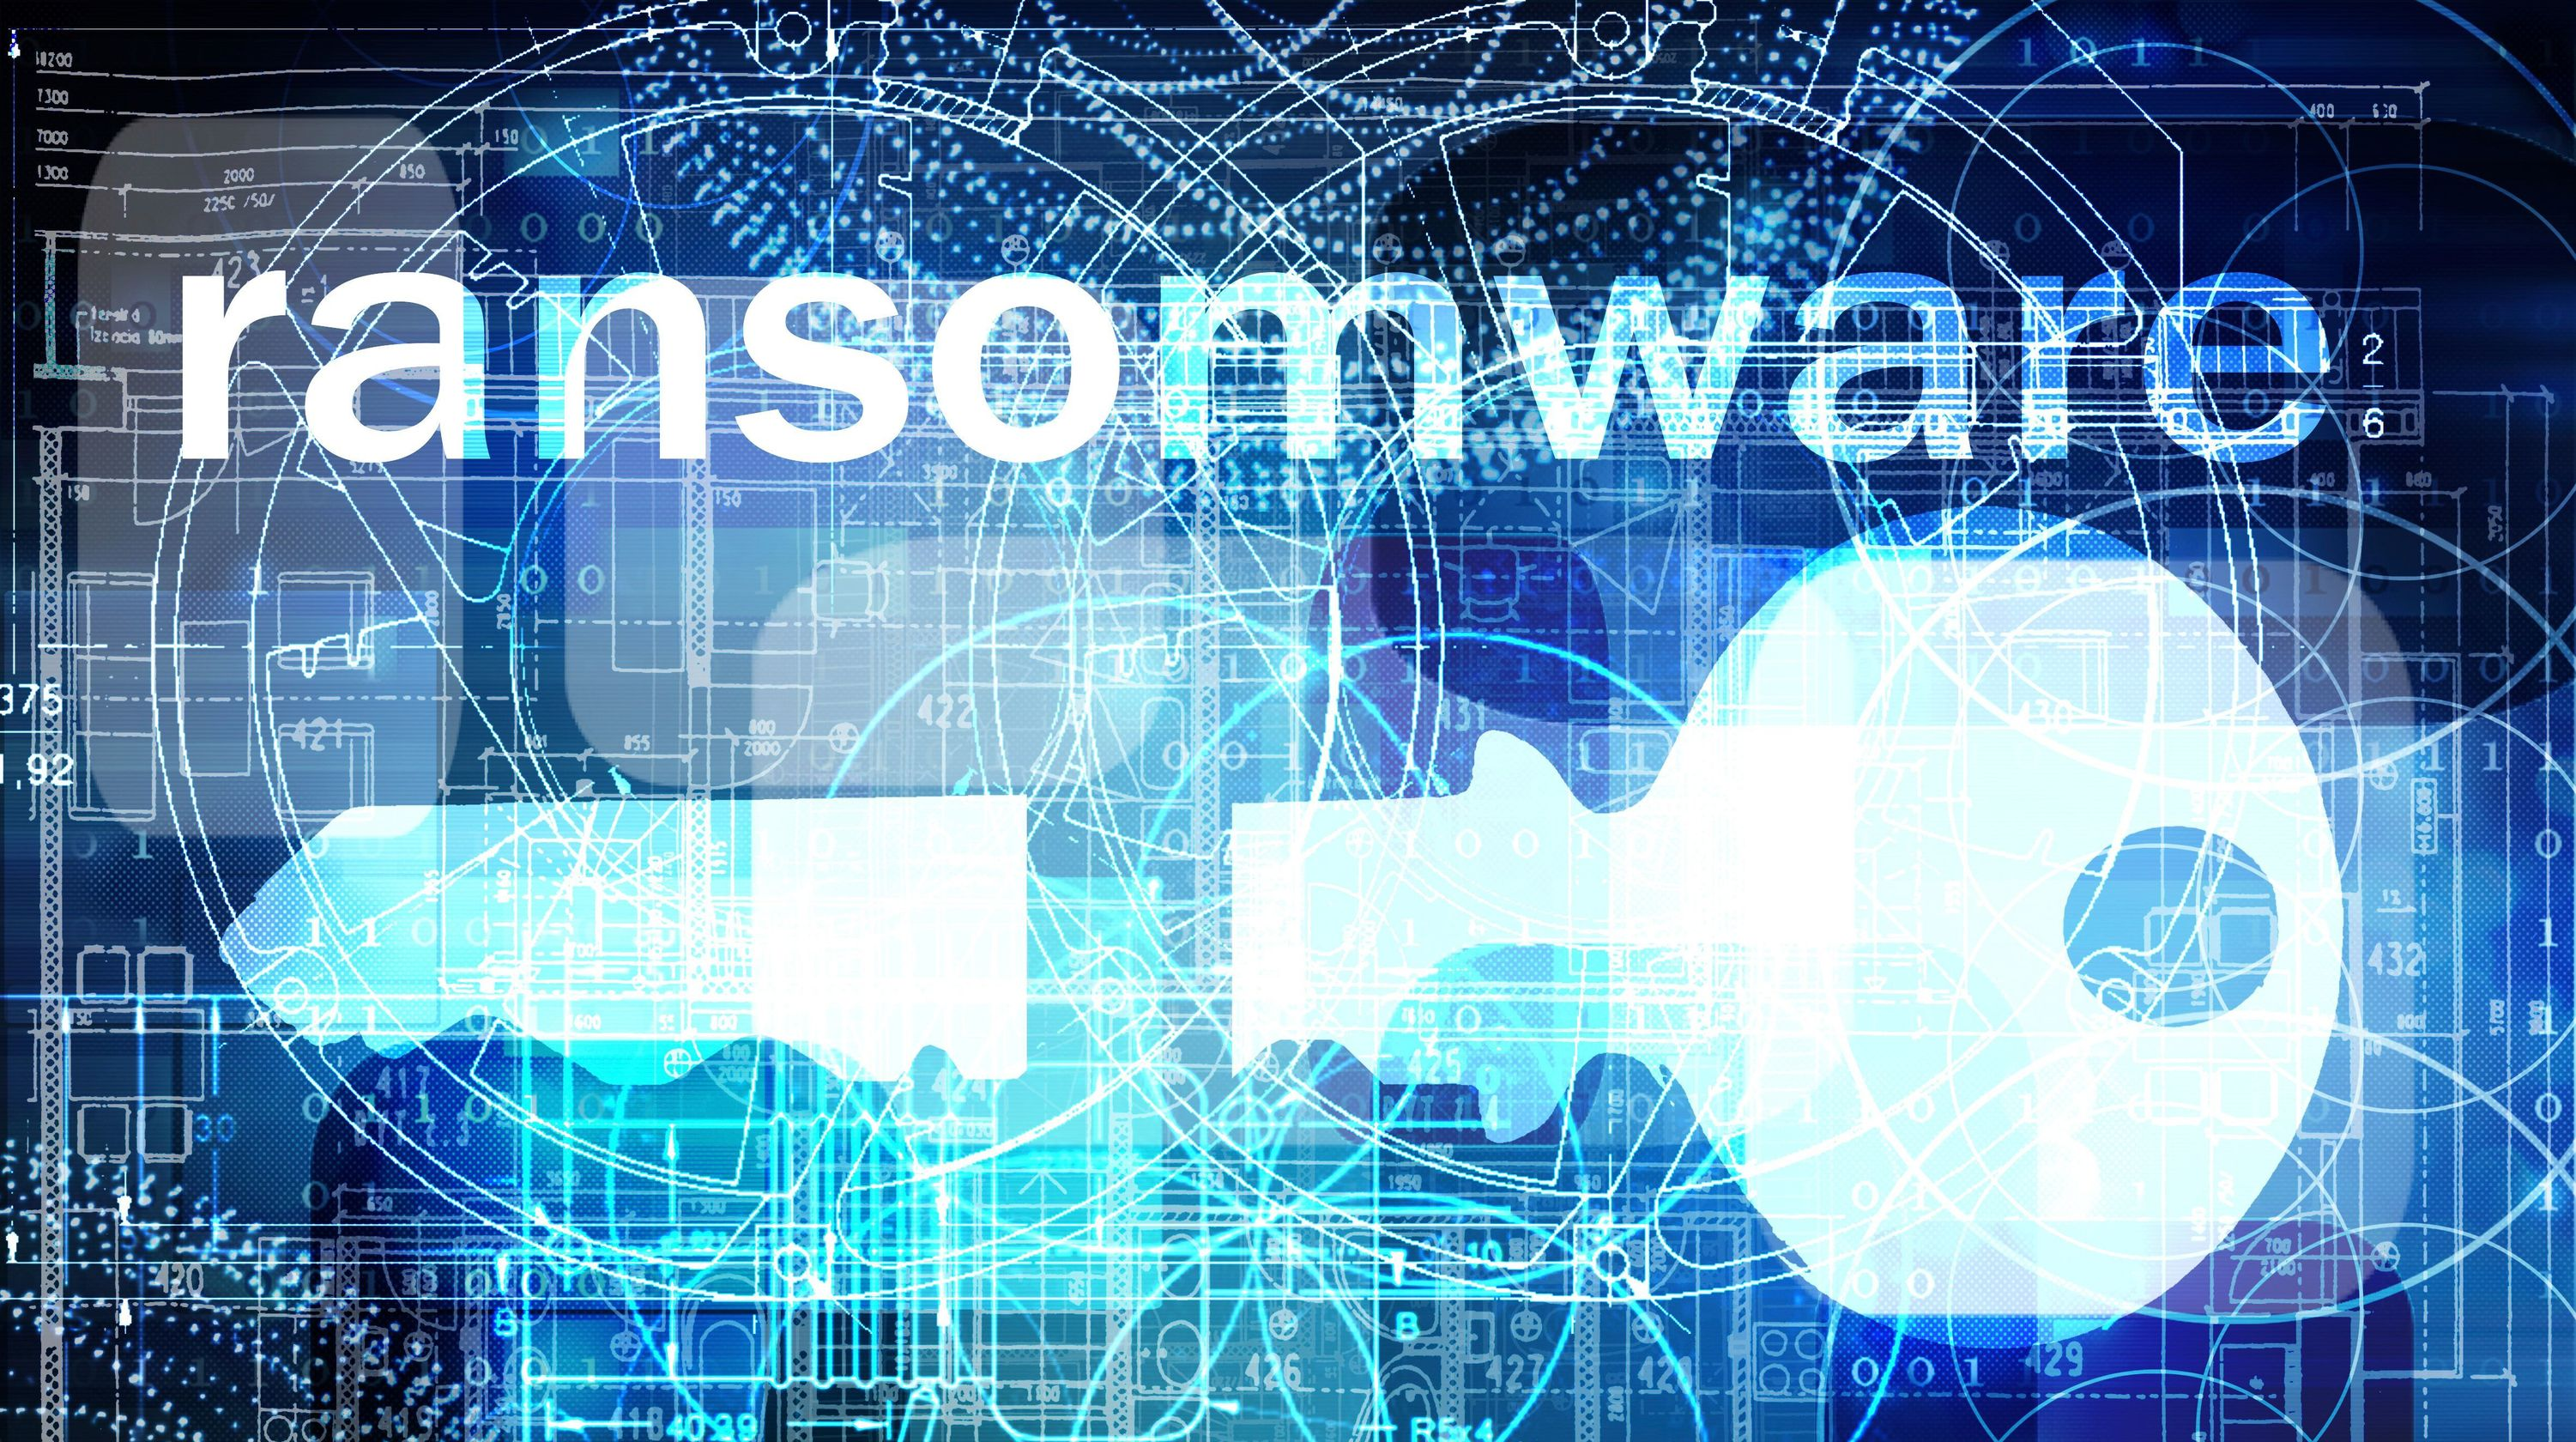 Ransomware Attacks on Businesses Increased Nearly 200% In Q1 2019